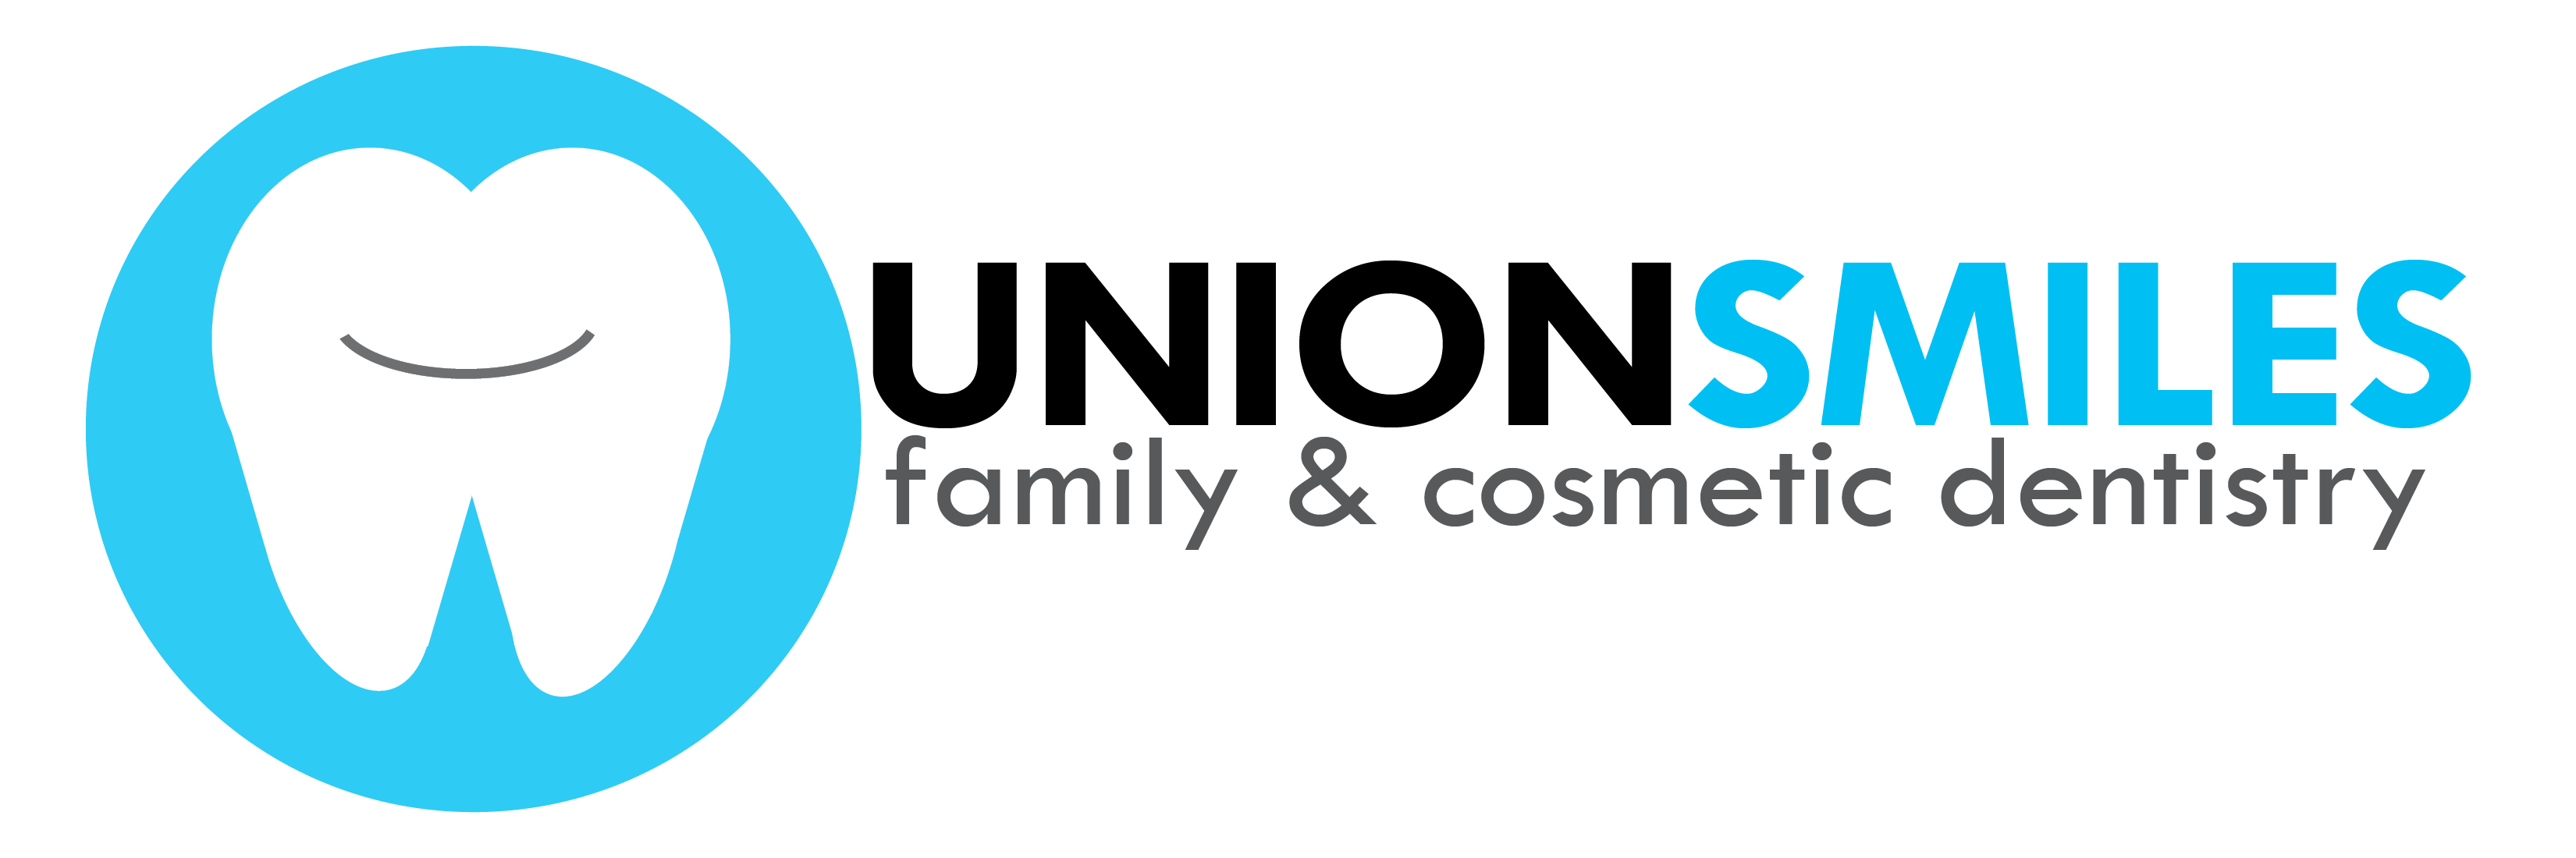 Union Smiles Family & Cosmetic Dentistry - Caglar DDS - Dentist in Union NJ